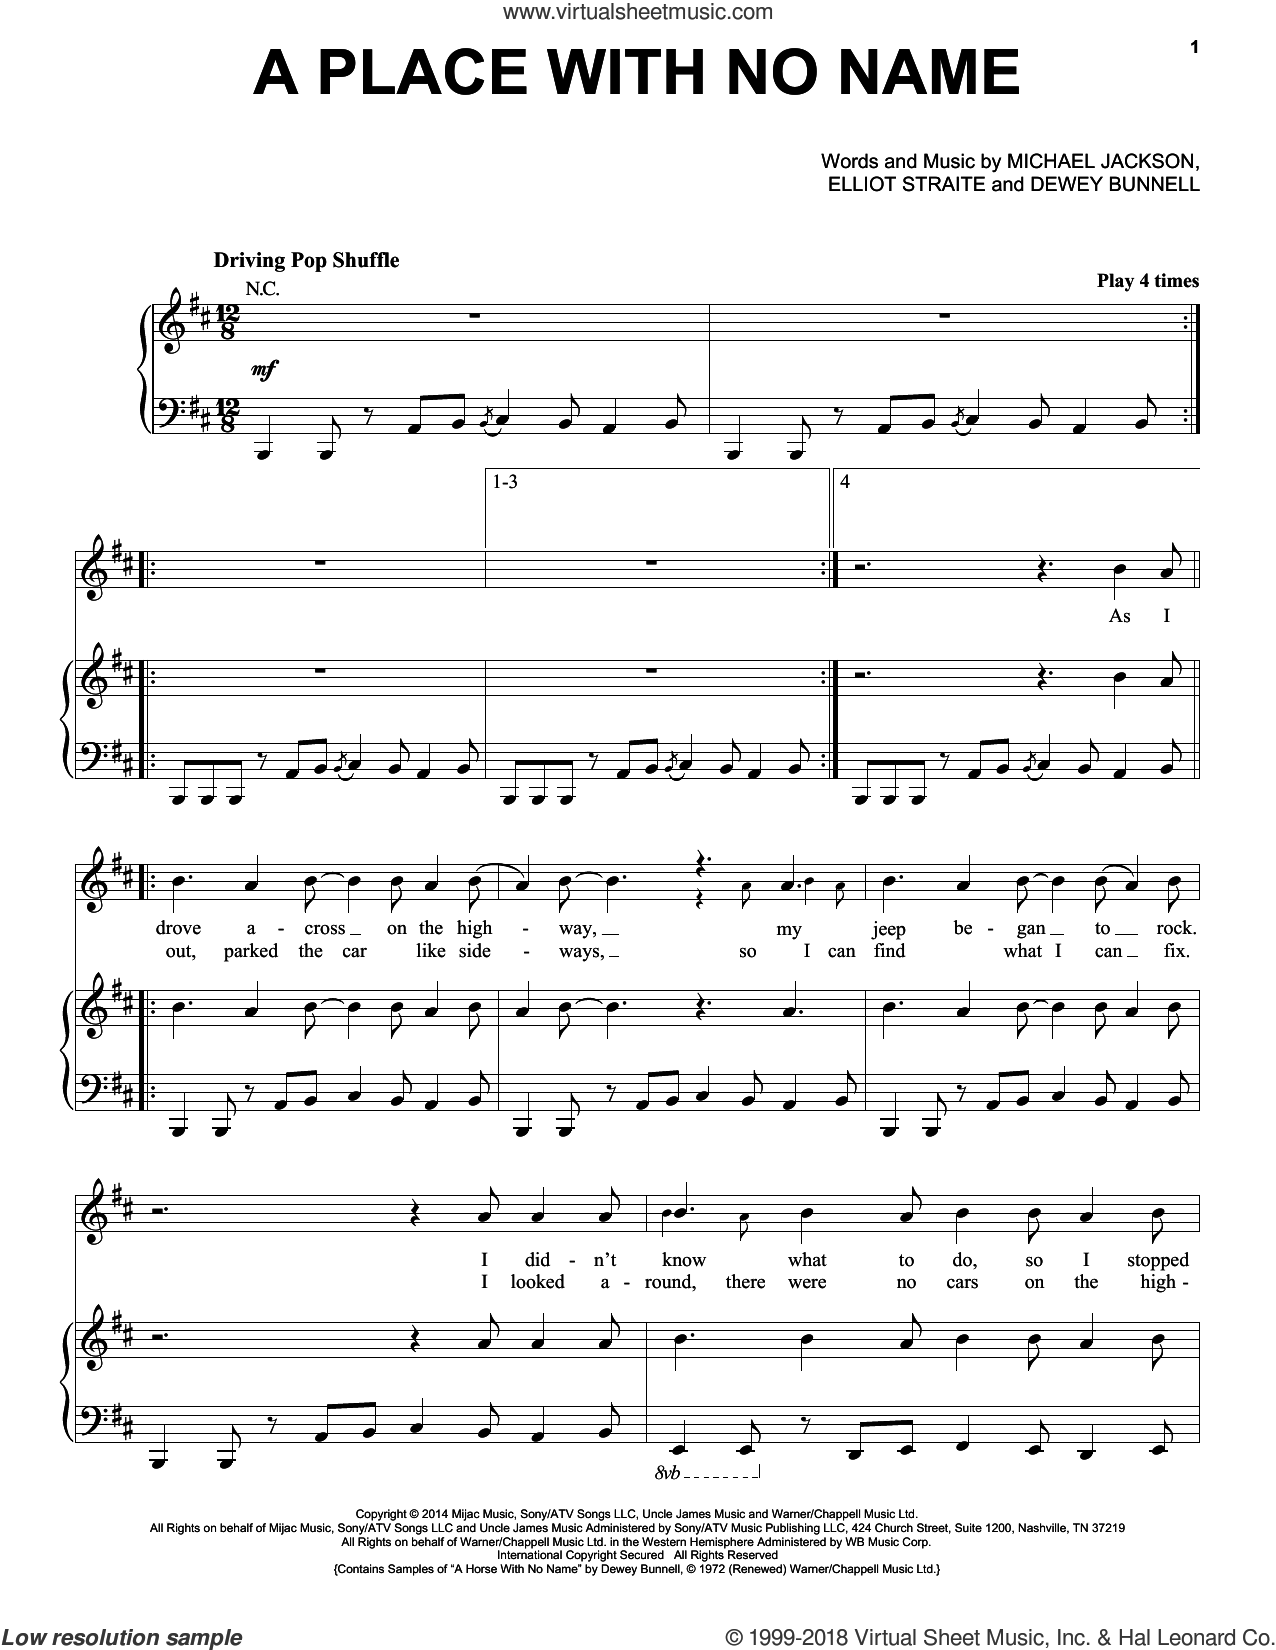 A Place With No Name sheet music for voice, piano or guitar by Michael Jackson, Dewey Bunnell and Elliot Straite, intermediate skill level